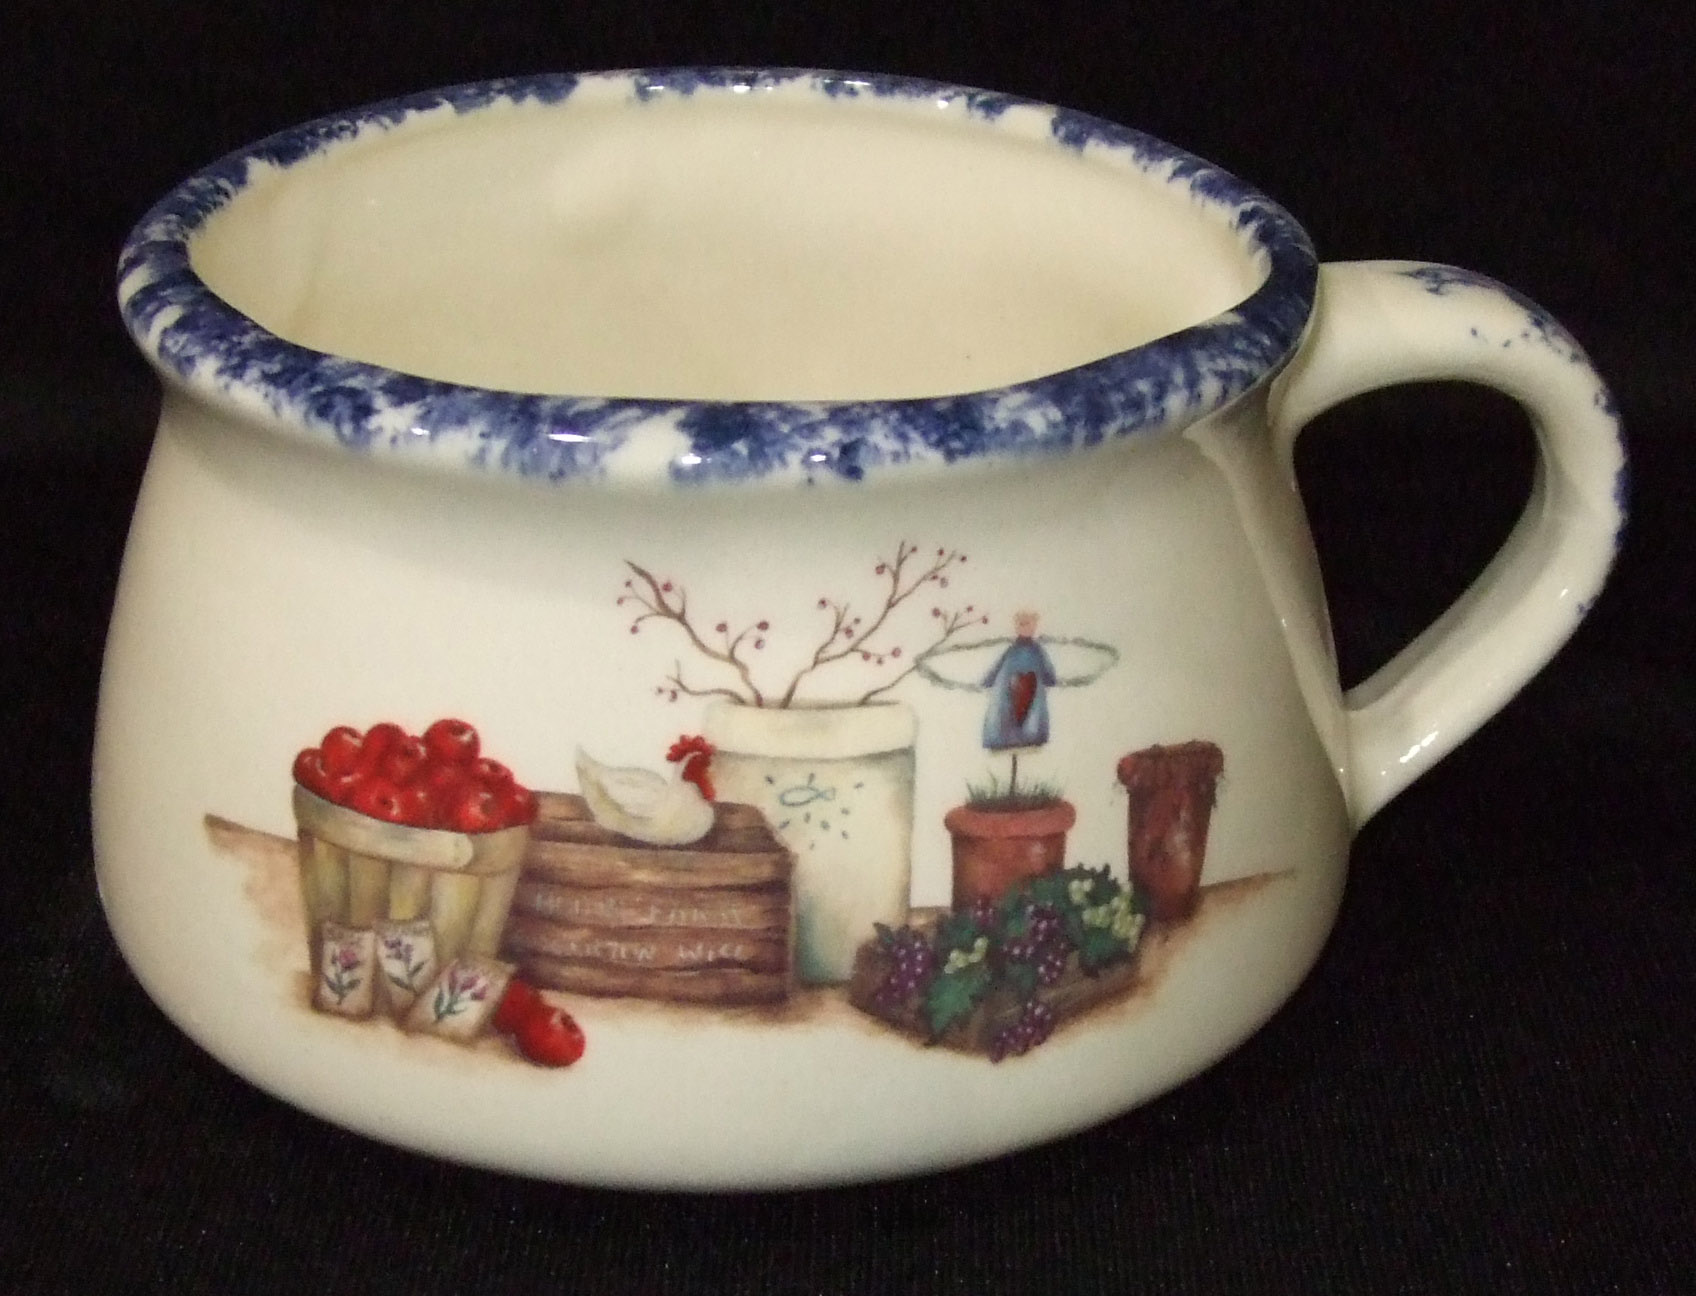 mug, tableware, pottery, crockery, ceramics, soup mug